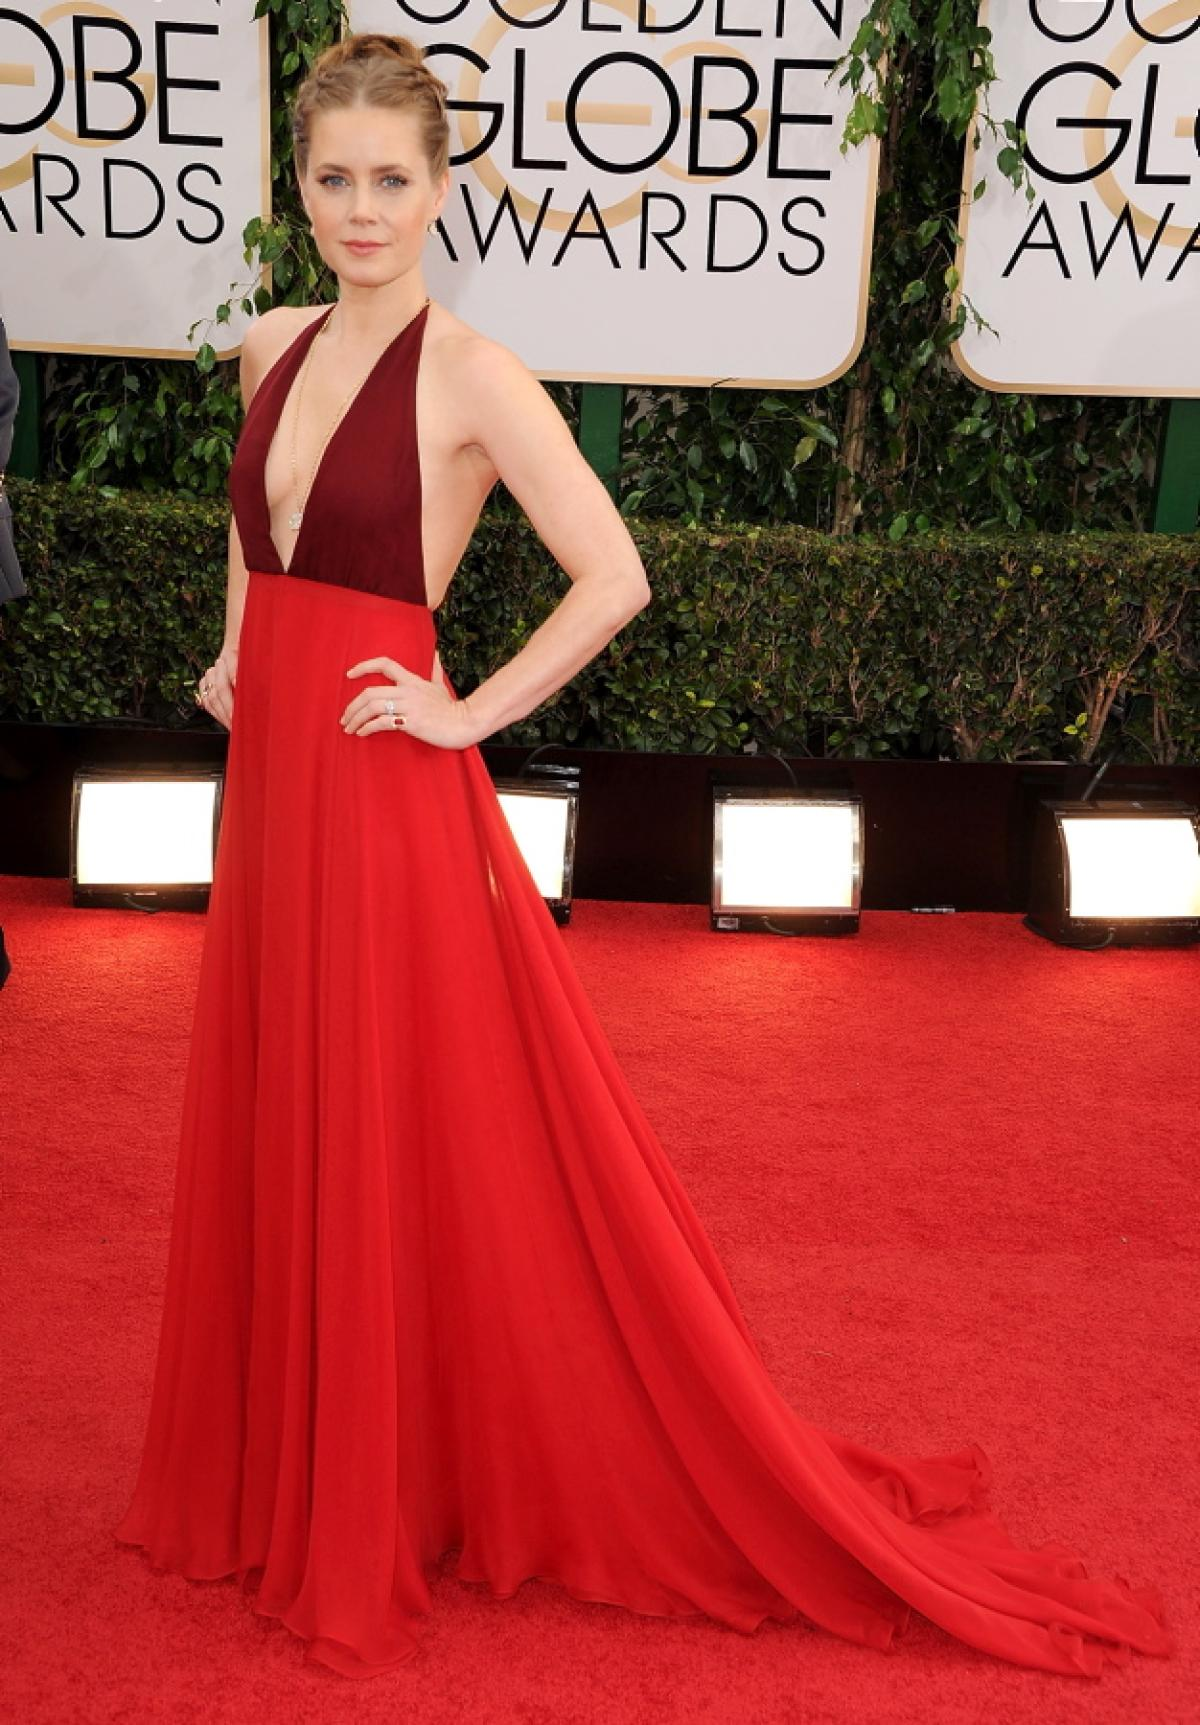 golden-globes-2014-amy-adams